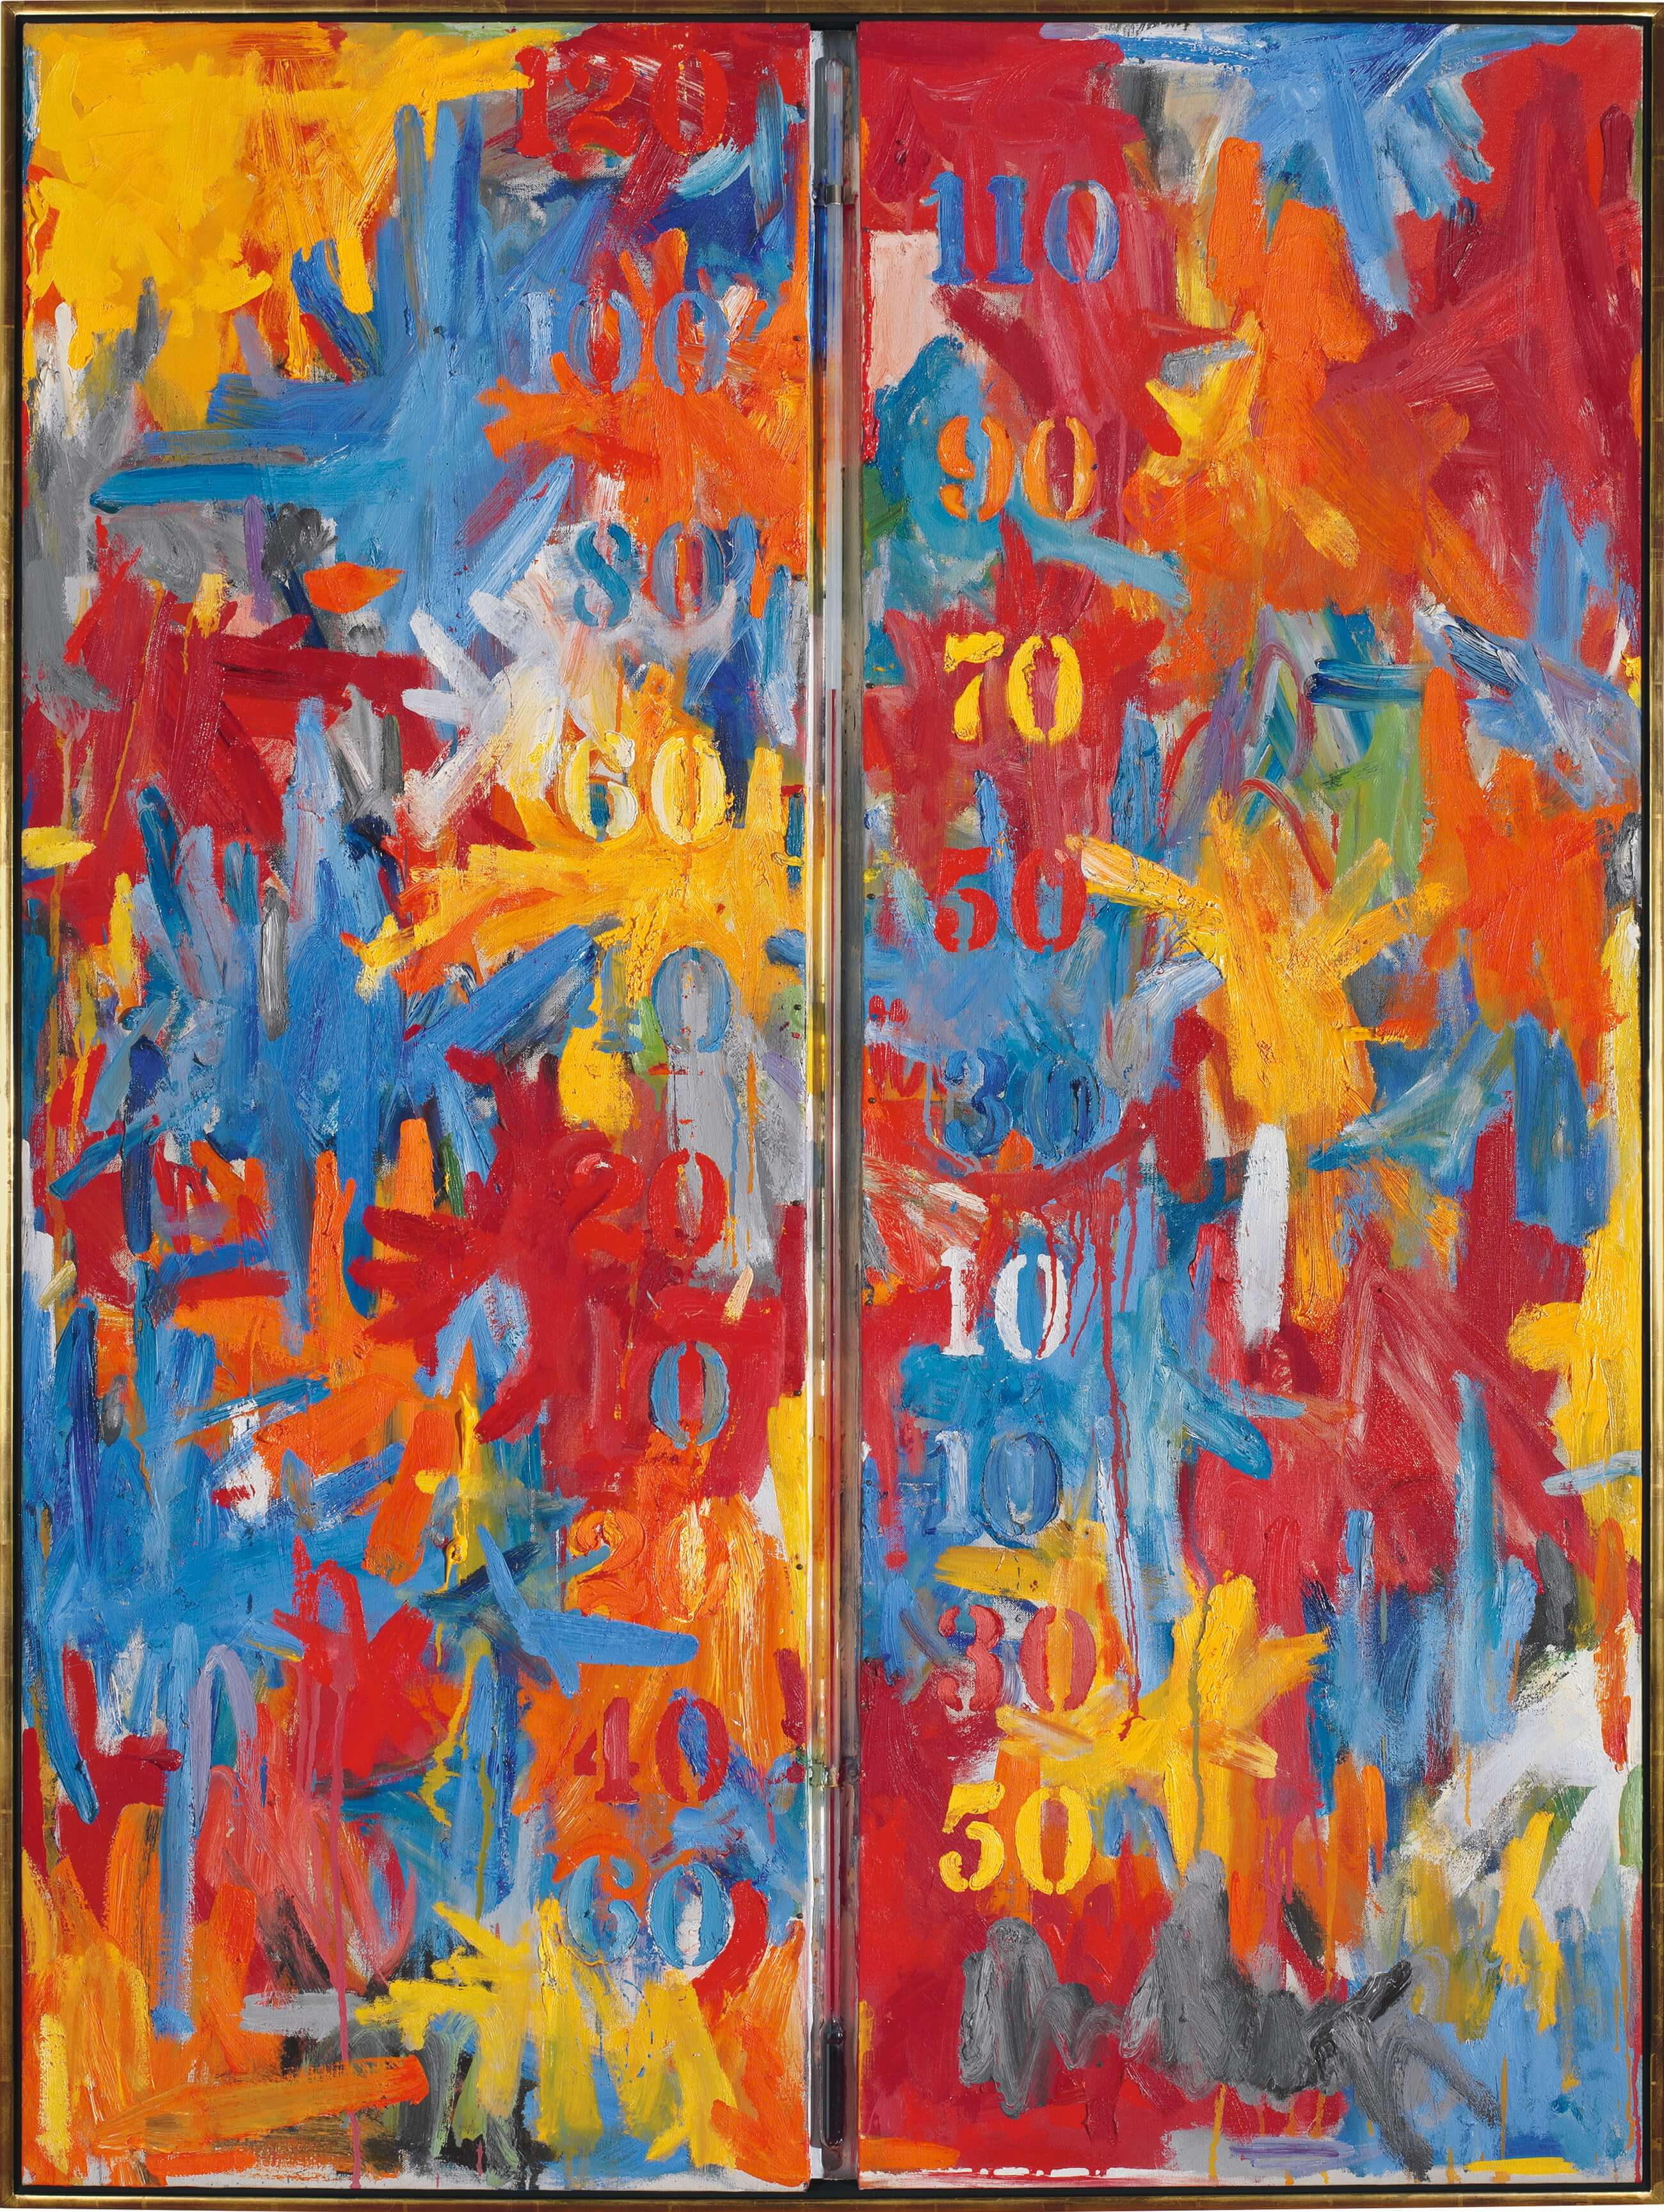 Thermometer, 1959, by Jasper Johns